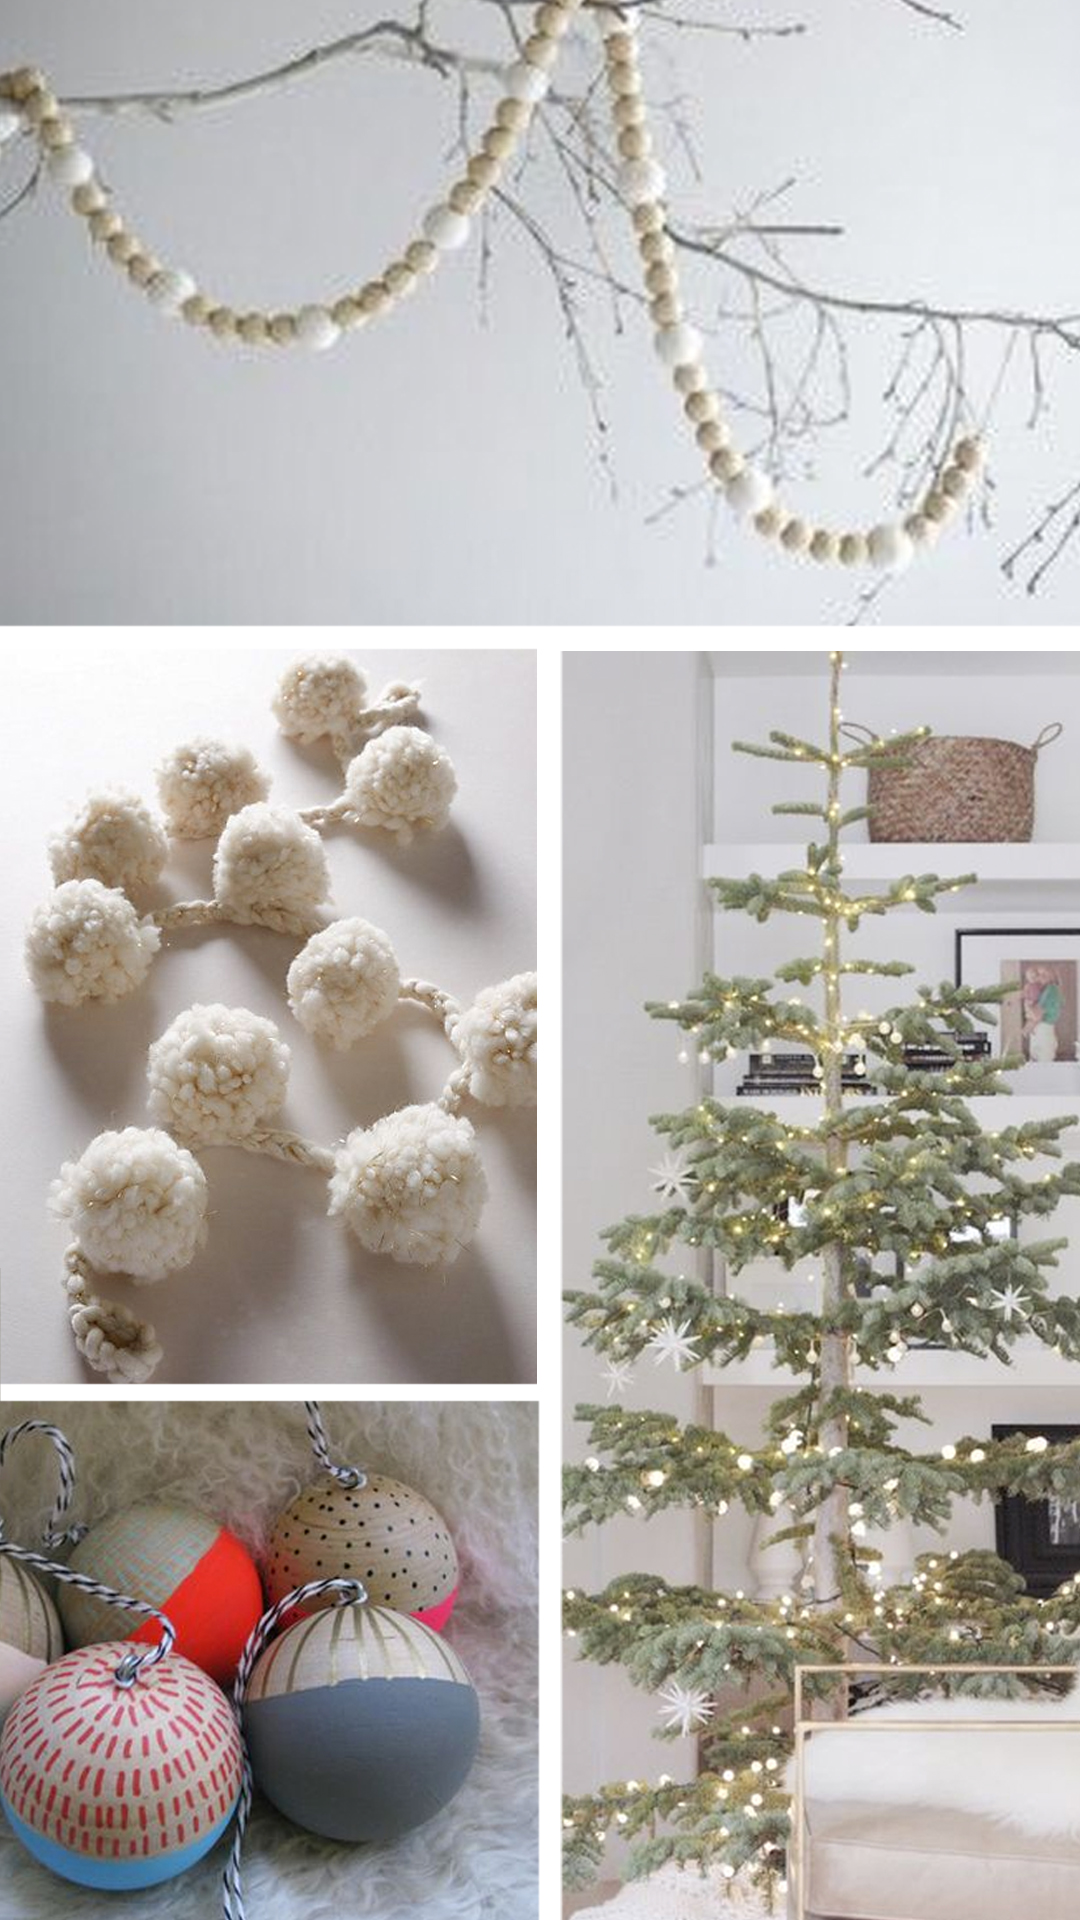 tree - do yourself a favor and get a noble fir - the silvery blue green color is lovely and plays well with neutrals. and his nice negative space for ornaments. keep lights white and plentiful - add strands of wooden bead garland, wool pom poms or felted ball garlands would be nice as well. add in some diy hand painted wooden ornaments in blue, periwinkle, gold, black and white in simple patterns to add some whimsy.